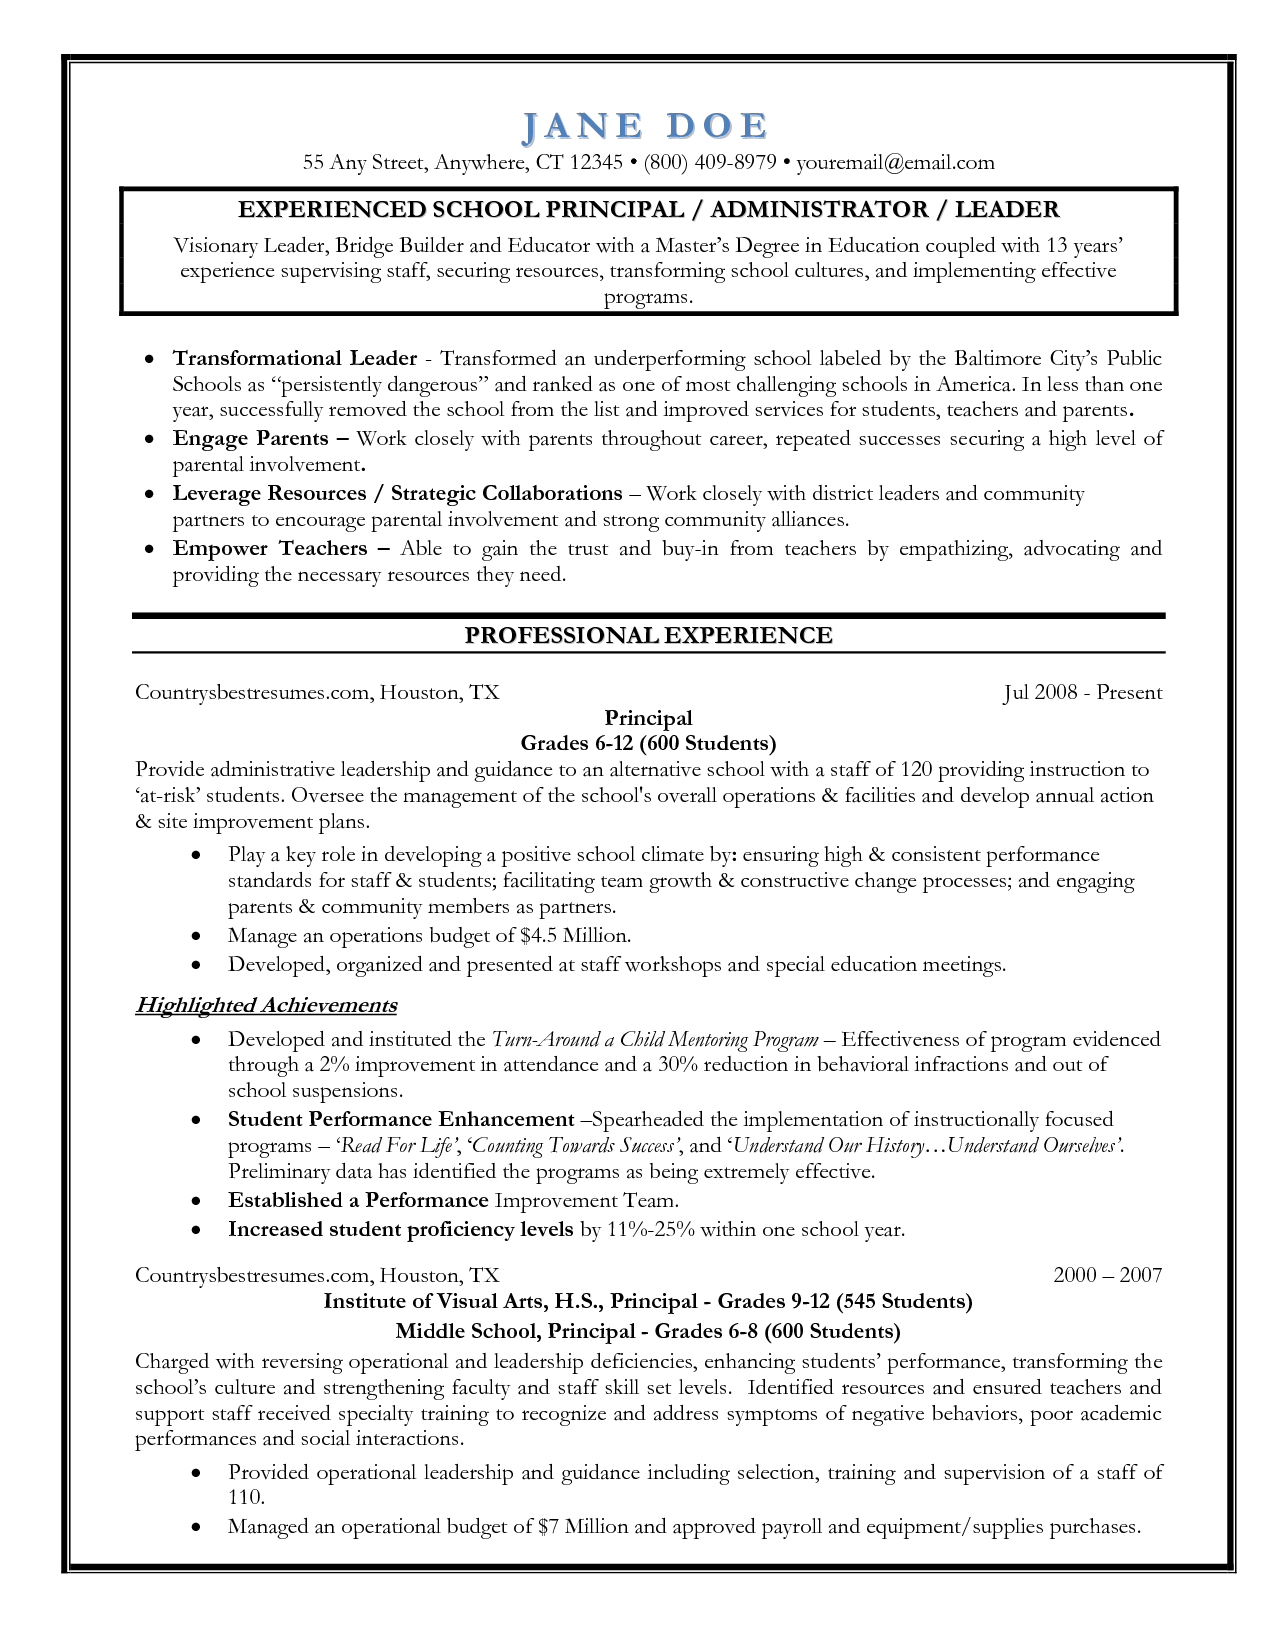 Entry Level Assistant Principal Resume Templates | Senior Educator    Principal Resume Sample  School Administrator Resume